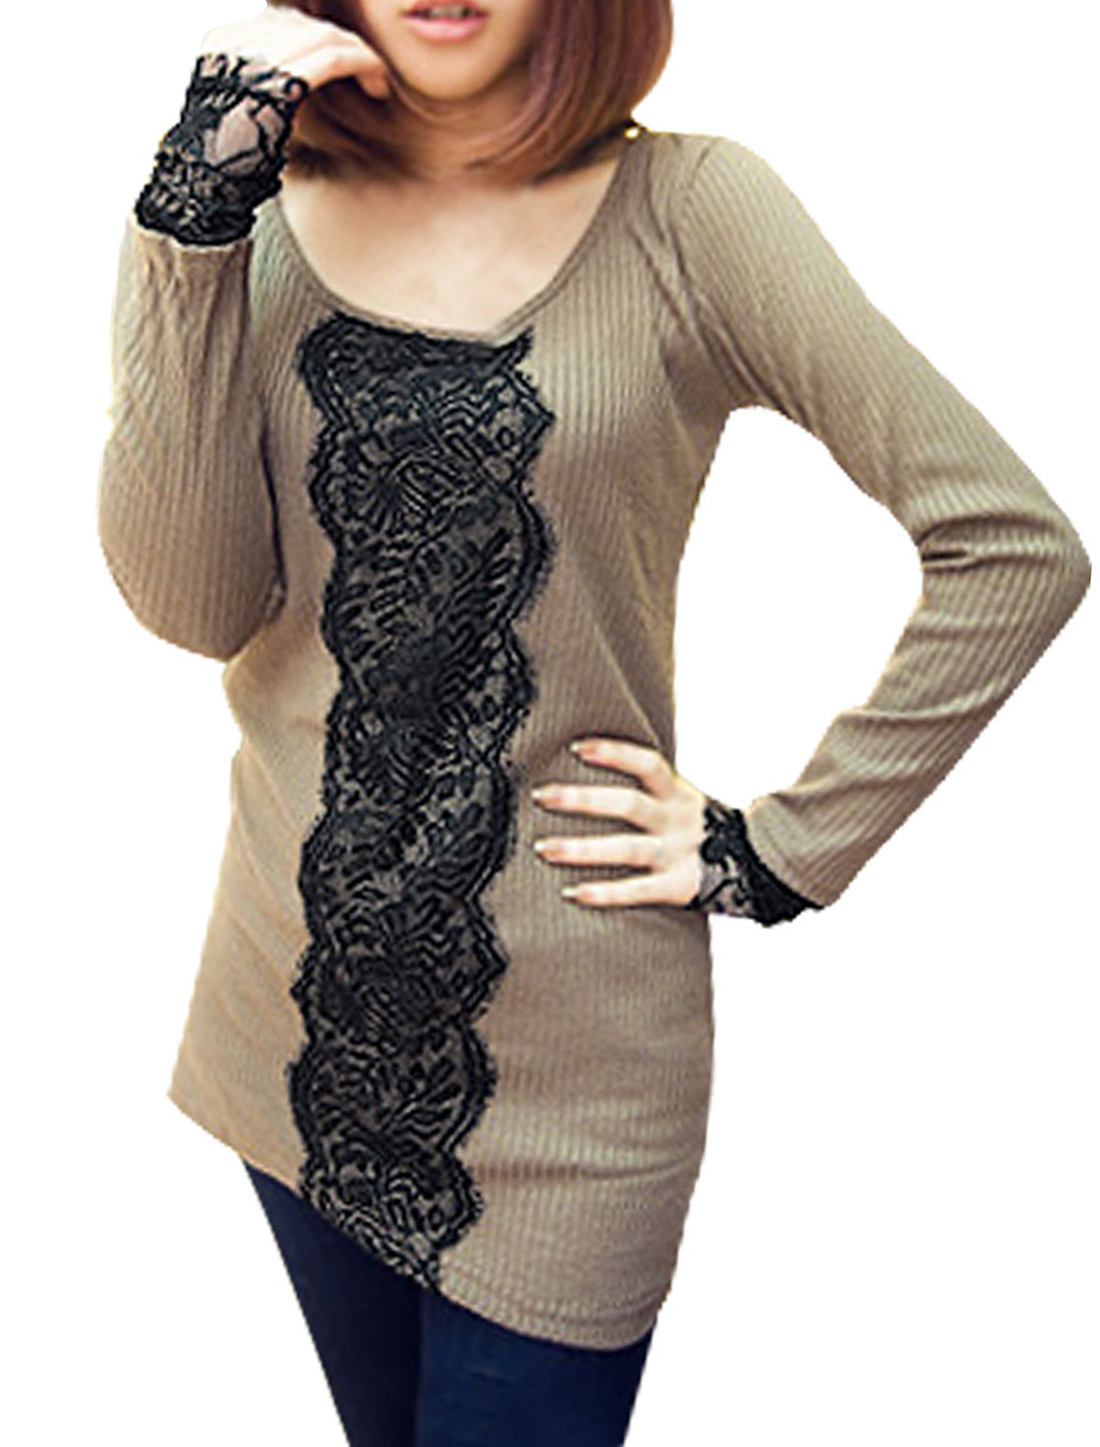 Lady Tan Color Lace Cuff Detail Stretchy Form-fitting Top Shirt XS